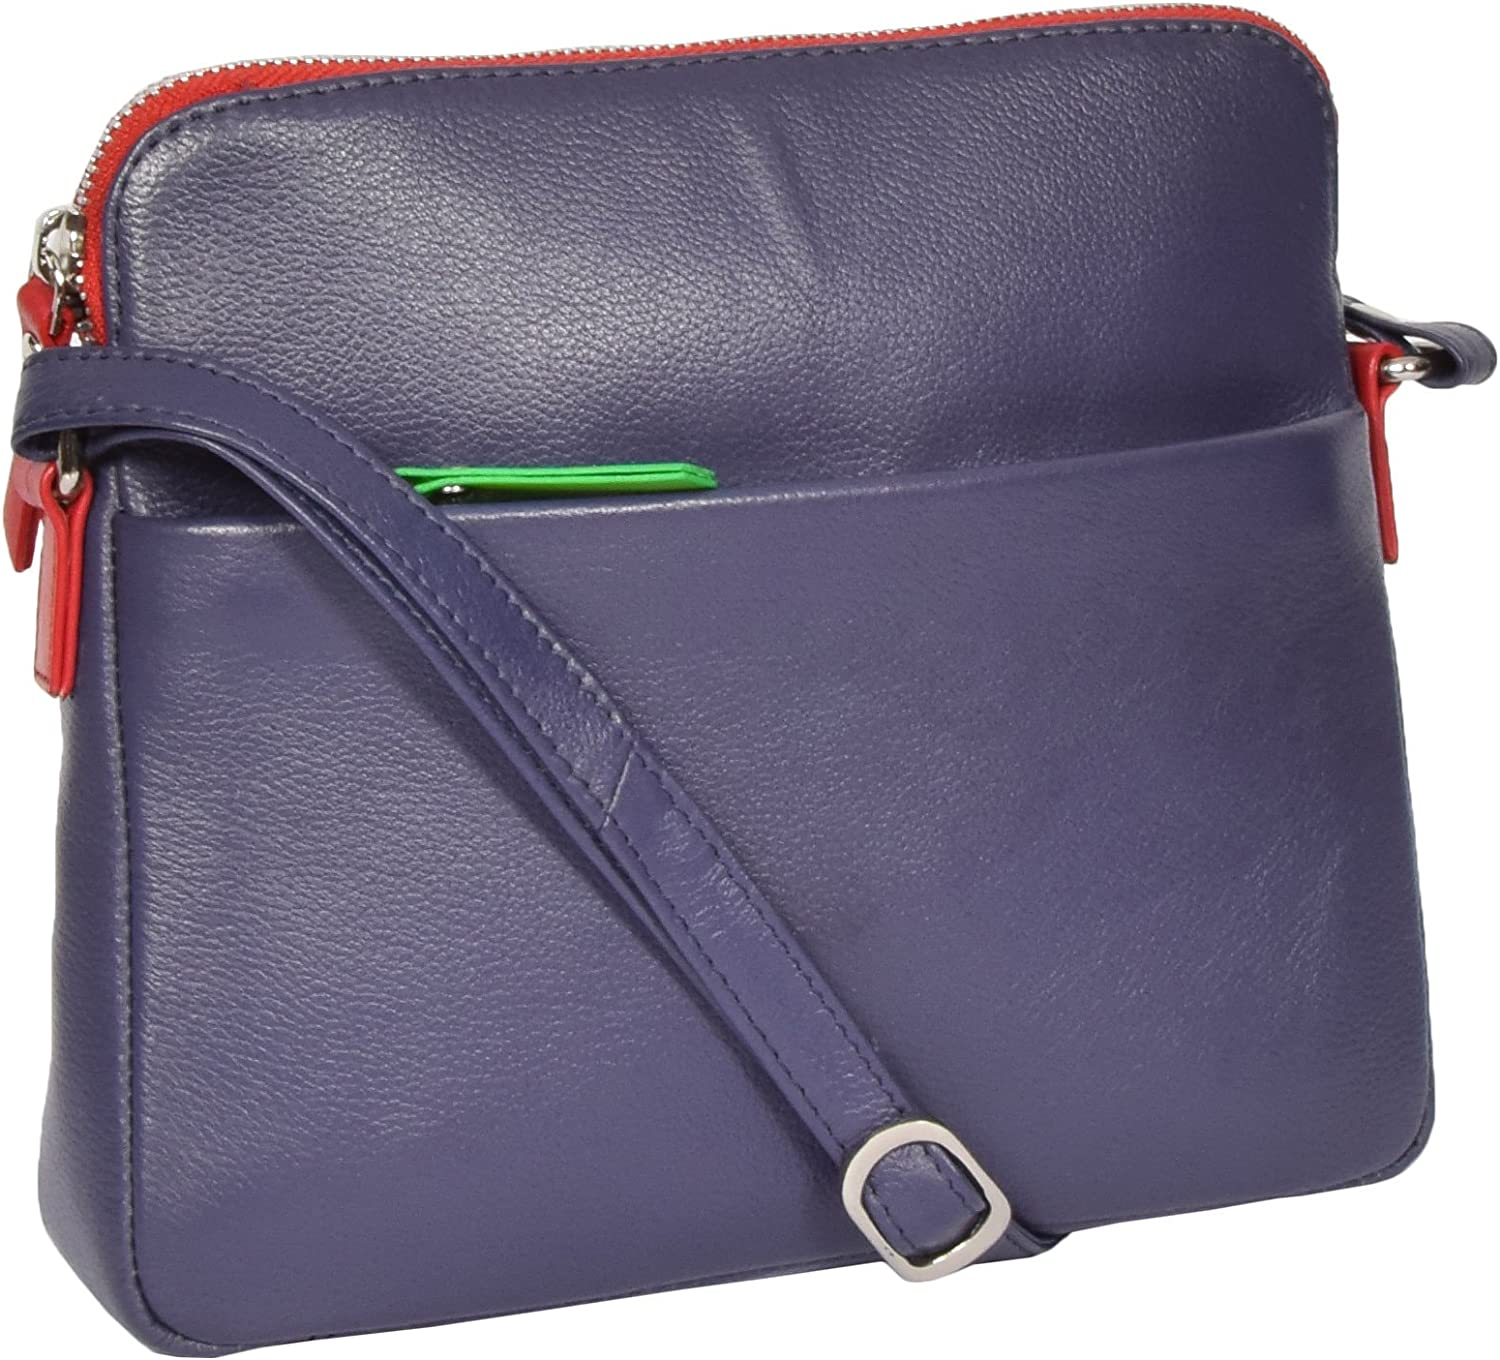 A1 FASHION GOODS Womens Soft Leather Cross Body Bag Purple Zip Top Messenger Sling Shoulder Bag Polly